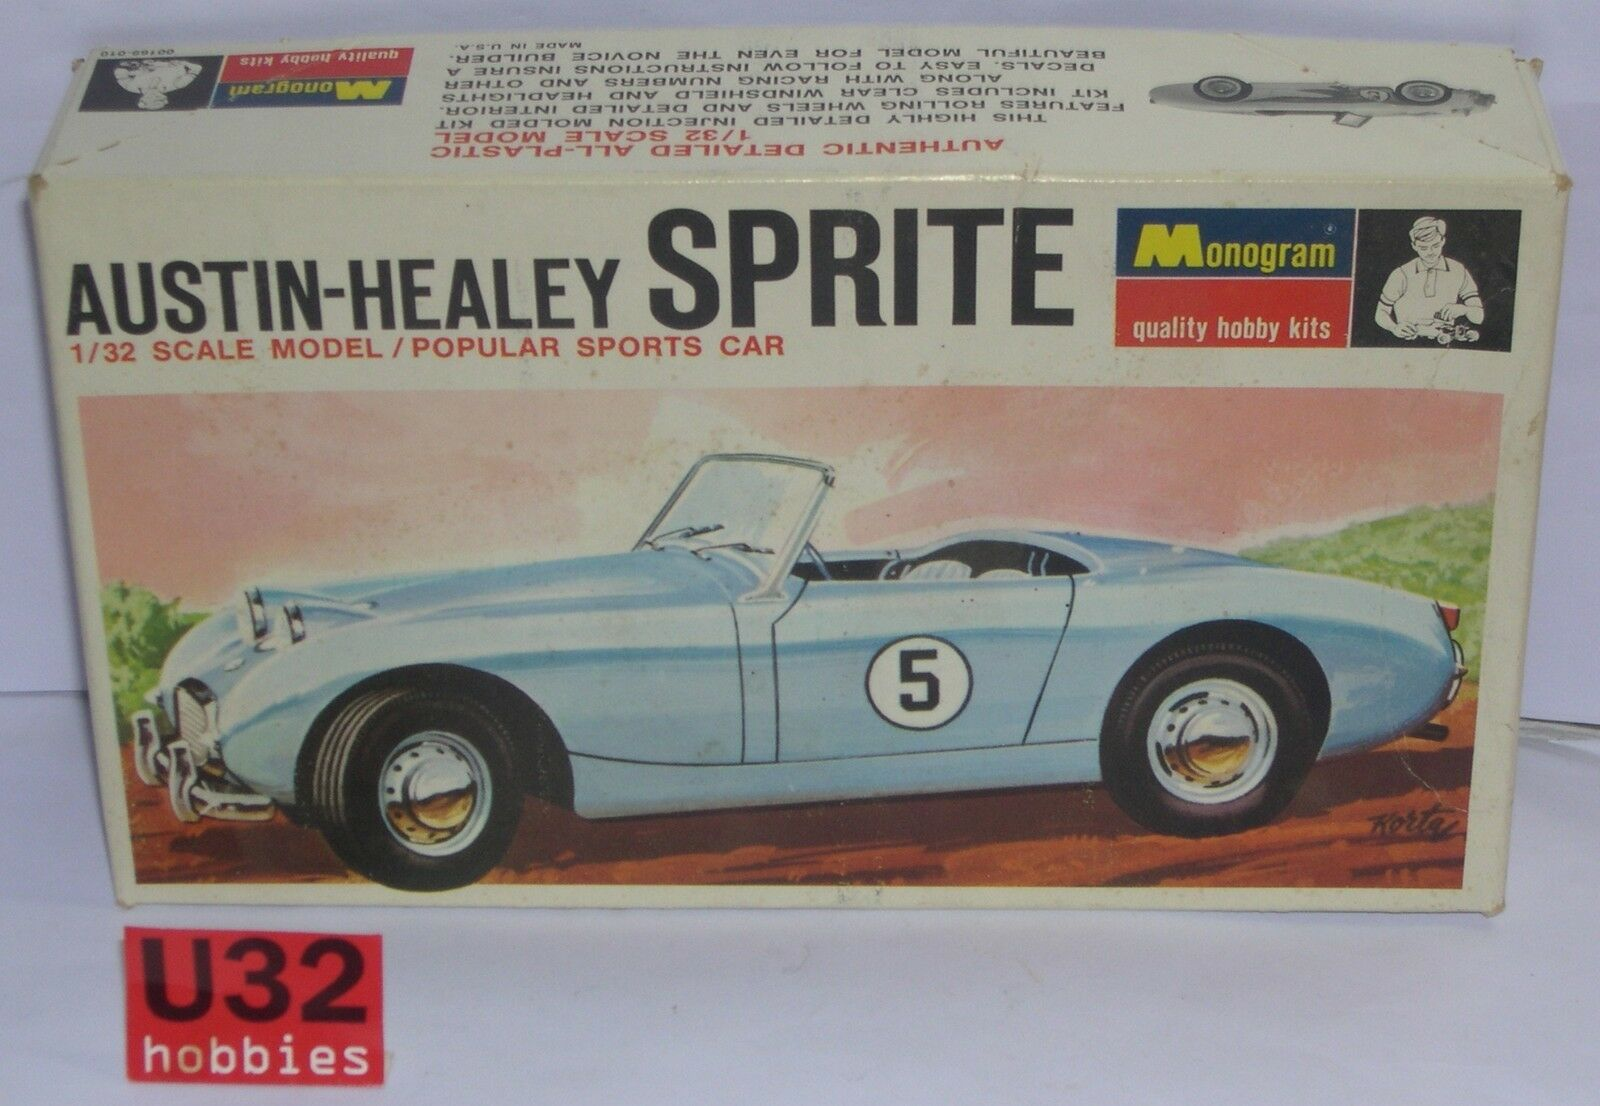 FN MONOGRAM PC169 KIT 1 32 AUSTIN HEALEY SPRITE